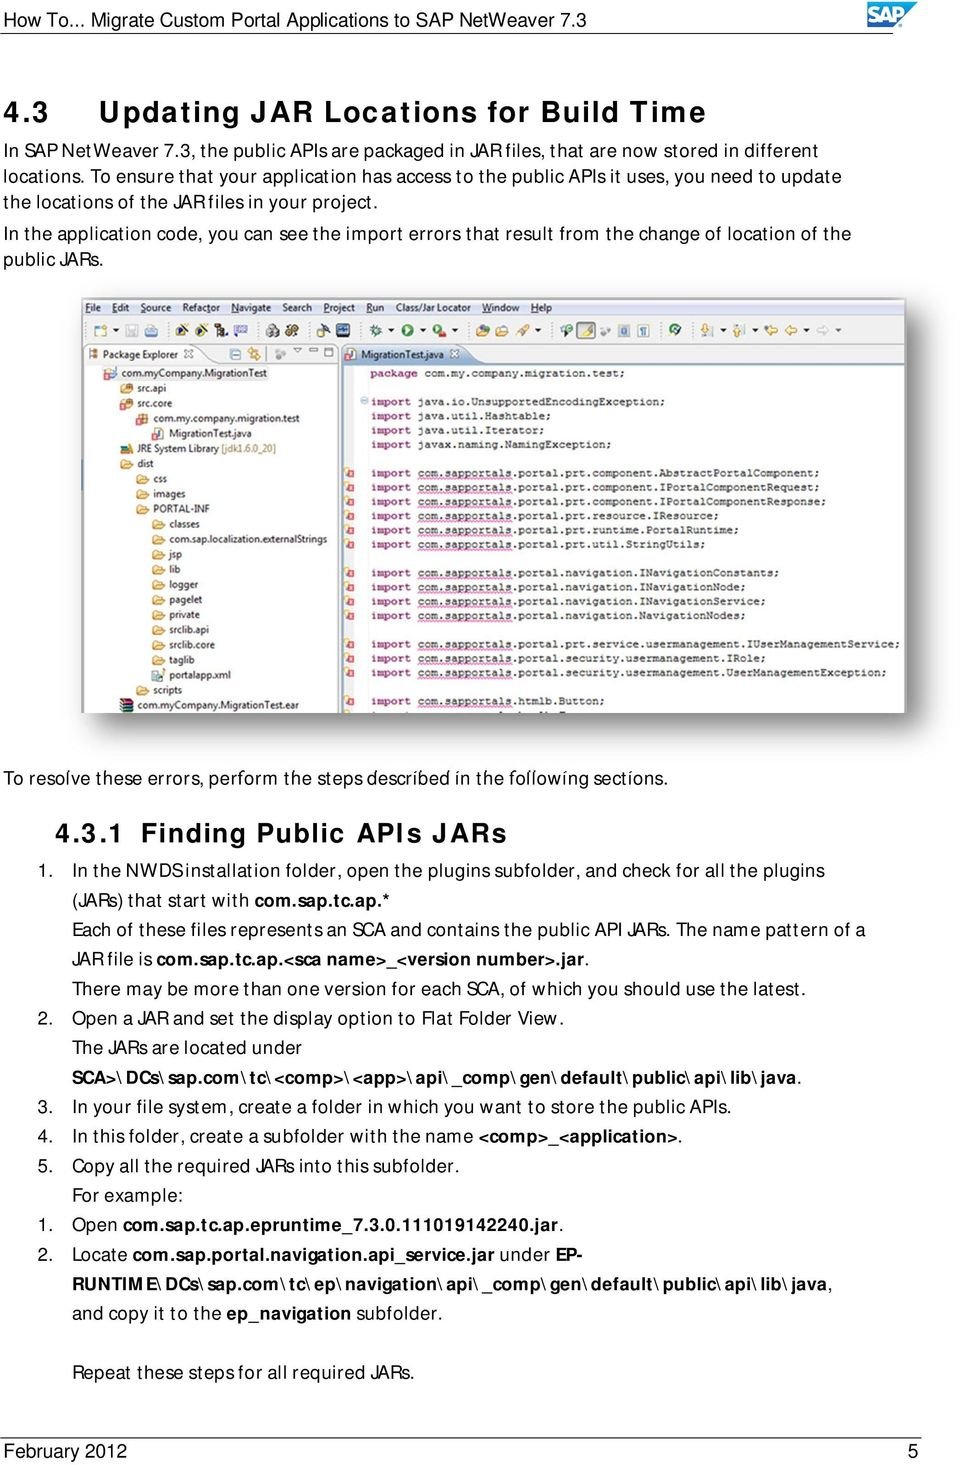 In the application code, you can see the import errors that result from the change of location of the public JARs. To resolve these errors, perform the steps described in the following sections. 4.3.